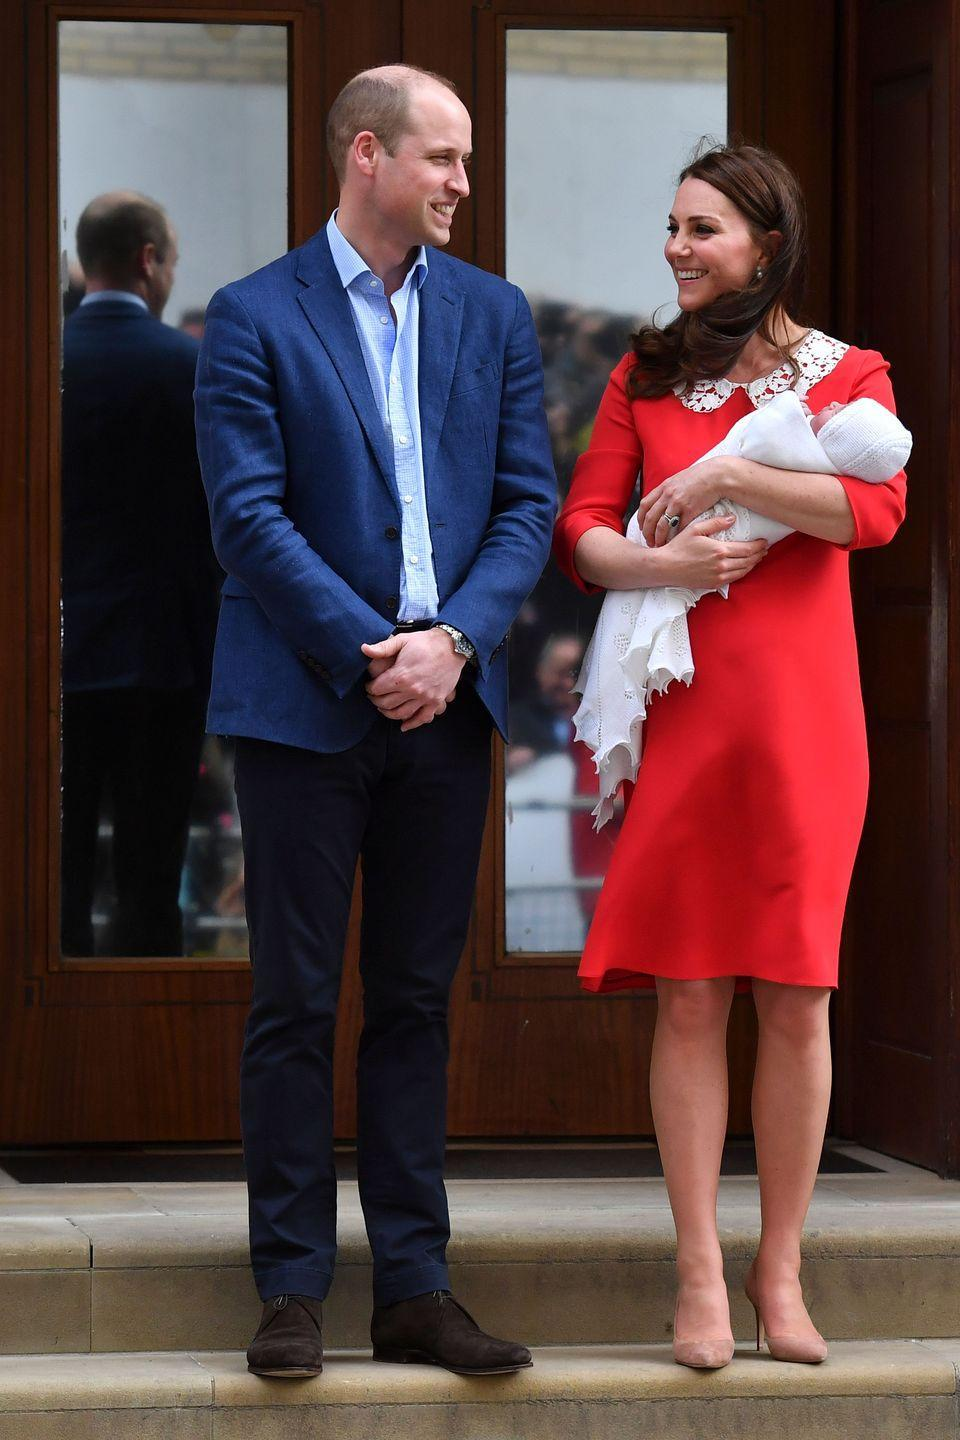 """<p>The Duchess of Cambridge introduced baby number three to <a href=""""https://www.townandcountrymag.com/society/tradition/a19675070/kate-middleton-third-baby-lindo-wing-outfit/"""" rel=""""nofollow noopener"""" target=""""_blank"""" data-ylk=""""slk:the world wearing a custom Jenny Packham dress"""" class=""""link rapid-noclick-resp"""">the world wearing a custom Jenny Packham dress</a>, complete with a chic peter pan collar. The Duchess accessorized with a pair of Gianvito Rossi heels. </p>"""